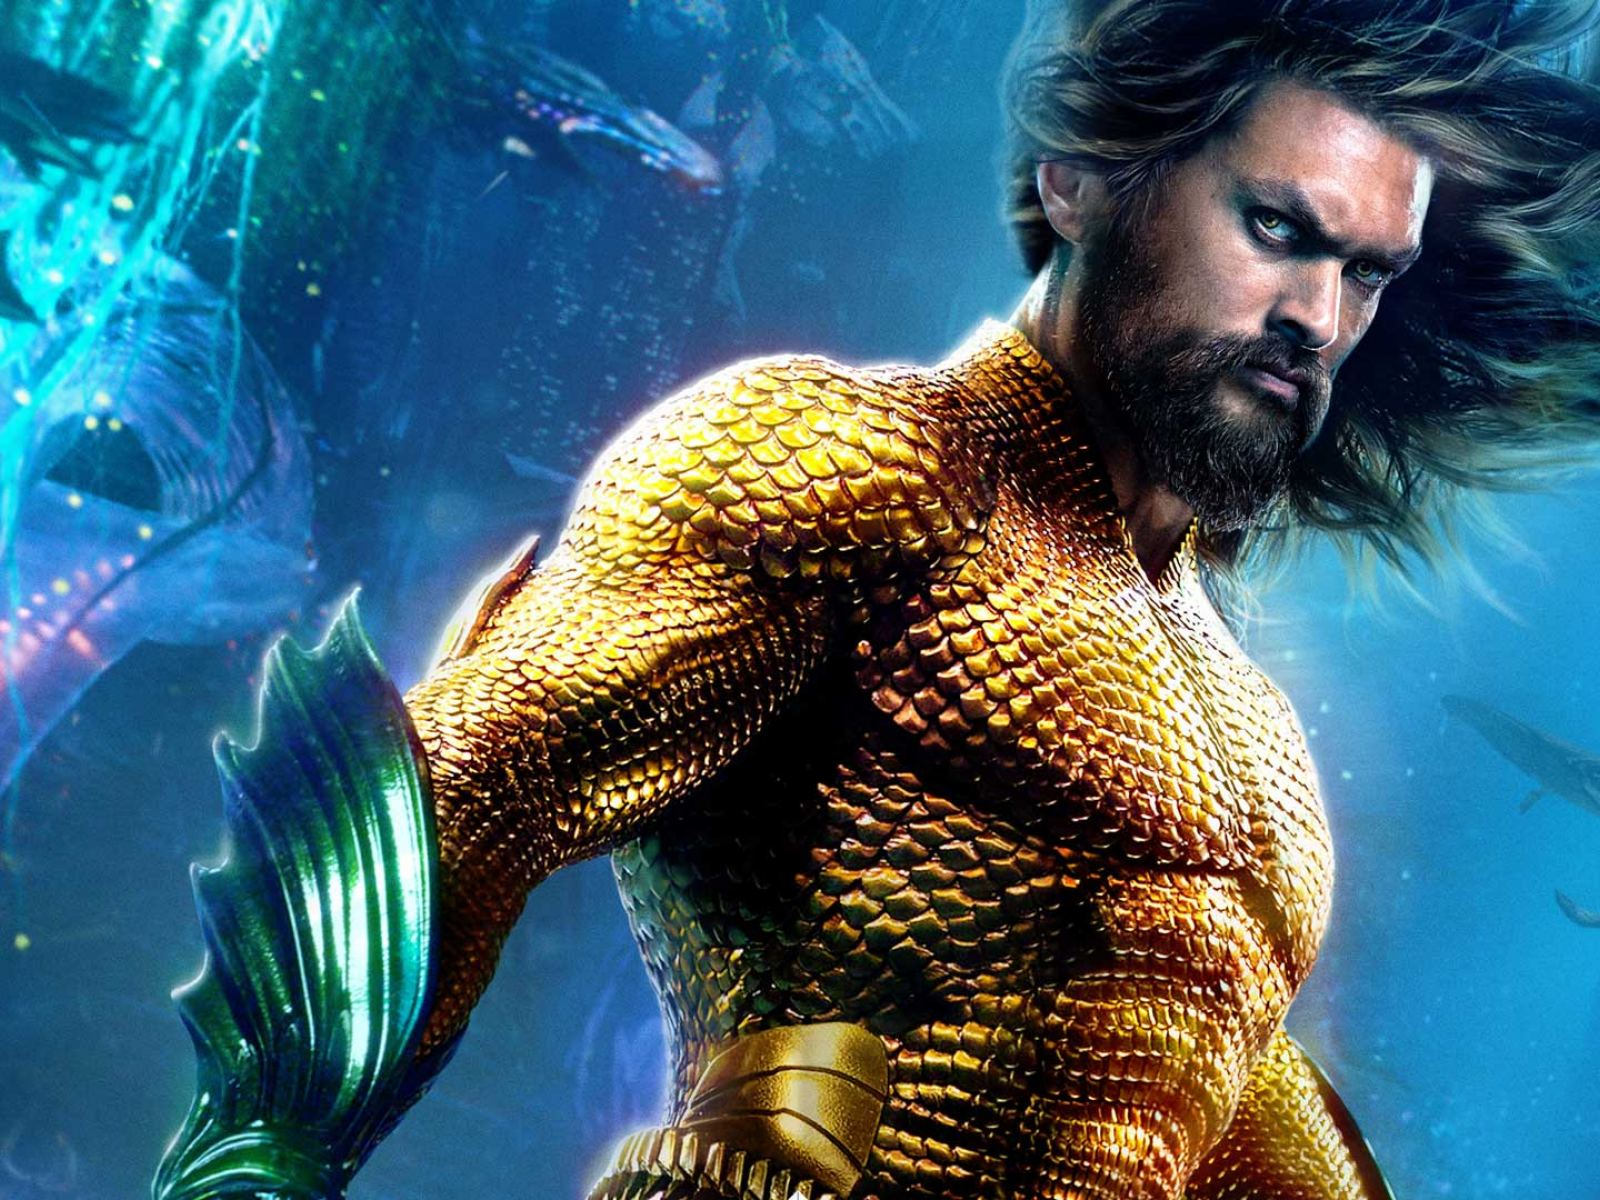 Main image for event titled Summer Movie Nights: Aquaman